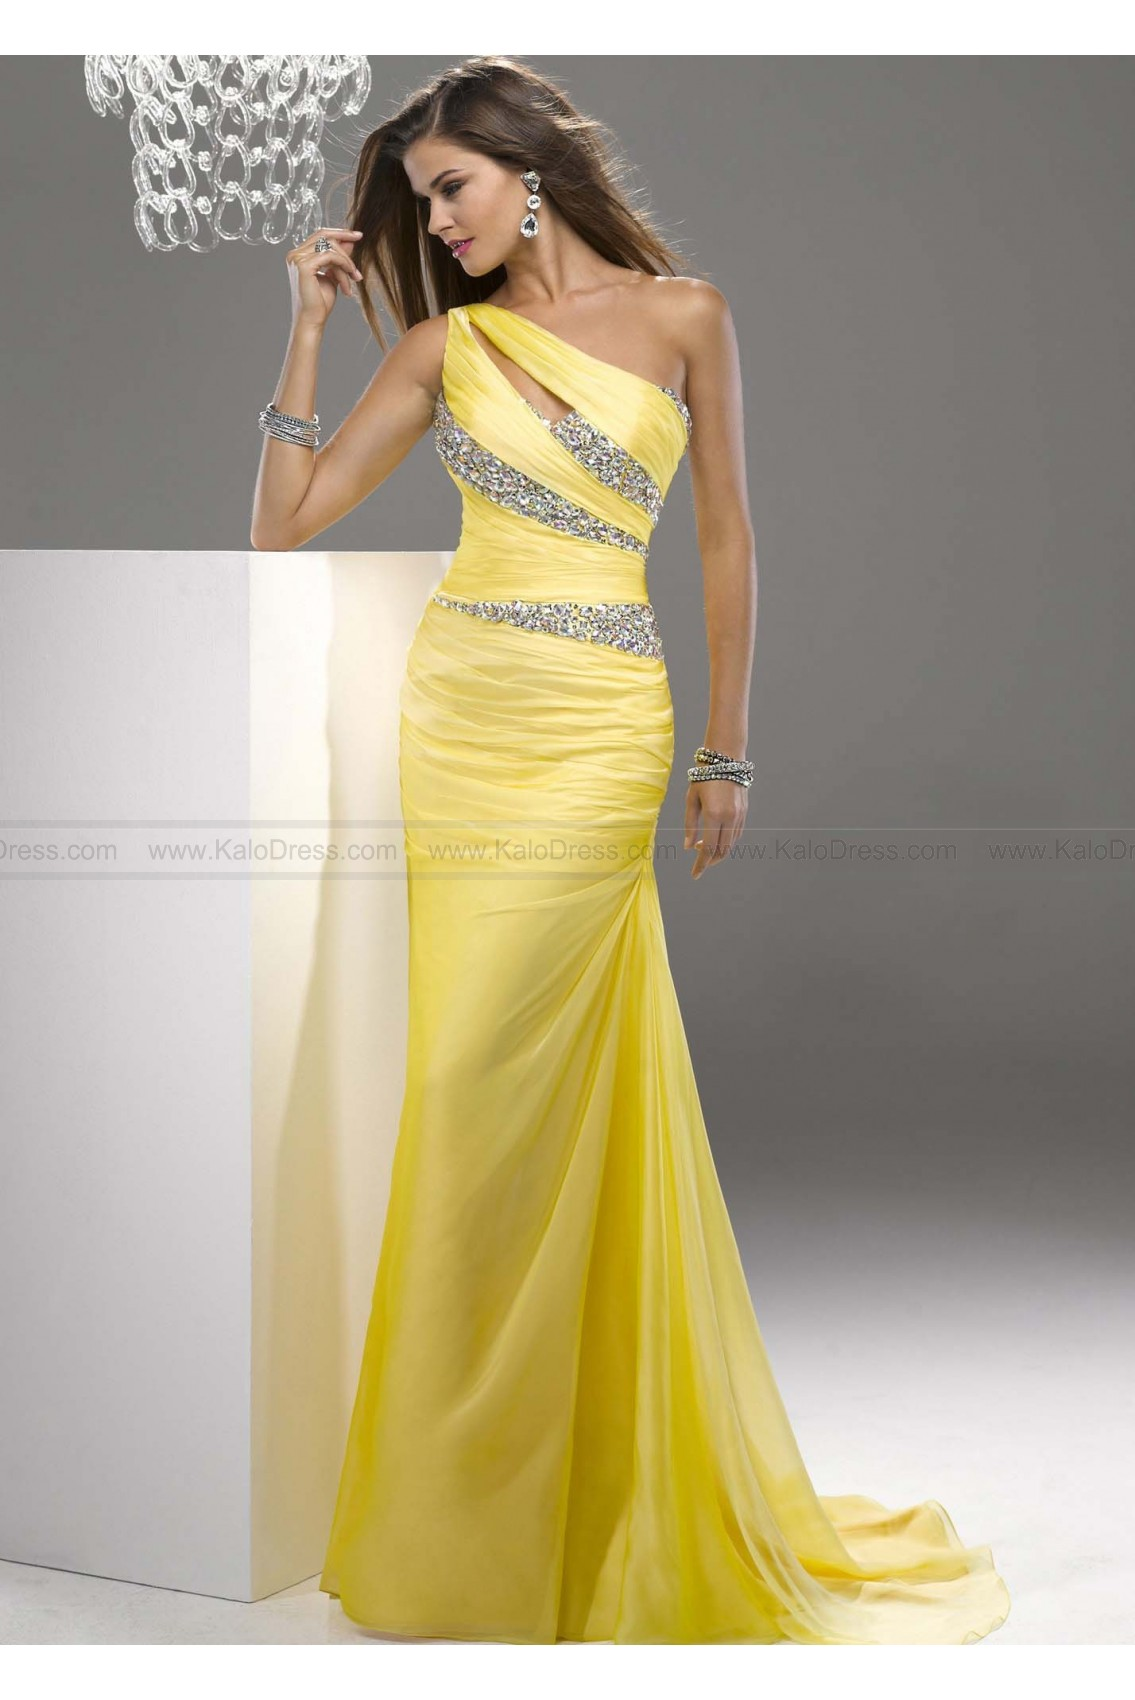 Sheath/Column One-shoulder Sweep Train Chiffon Prom Dresses - Wedding Party Dresses